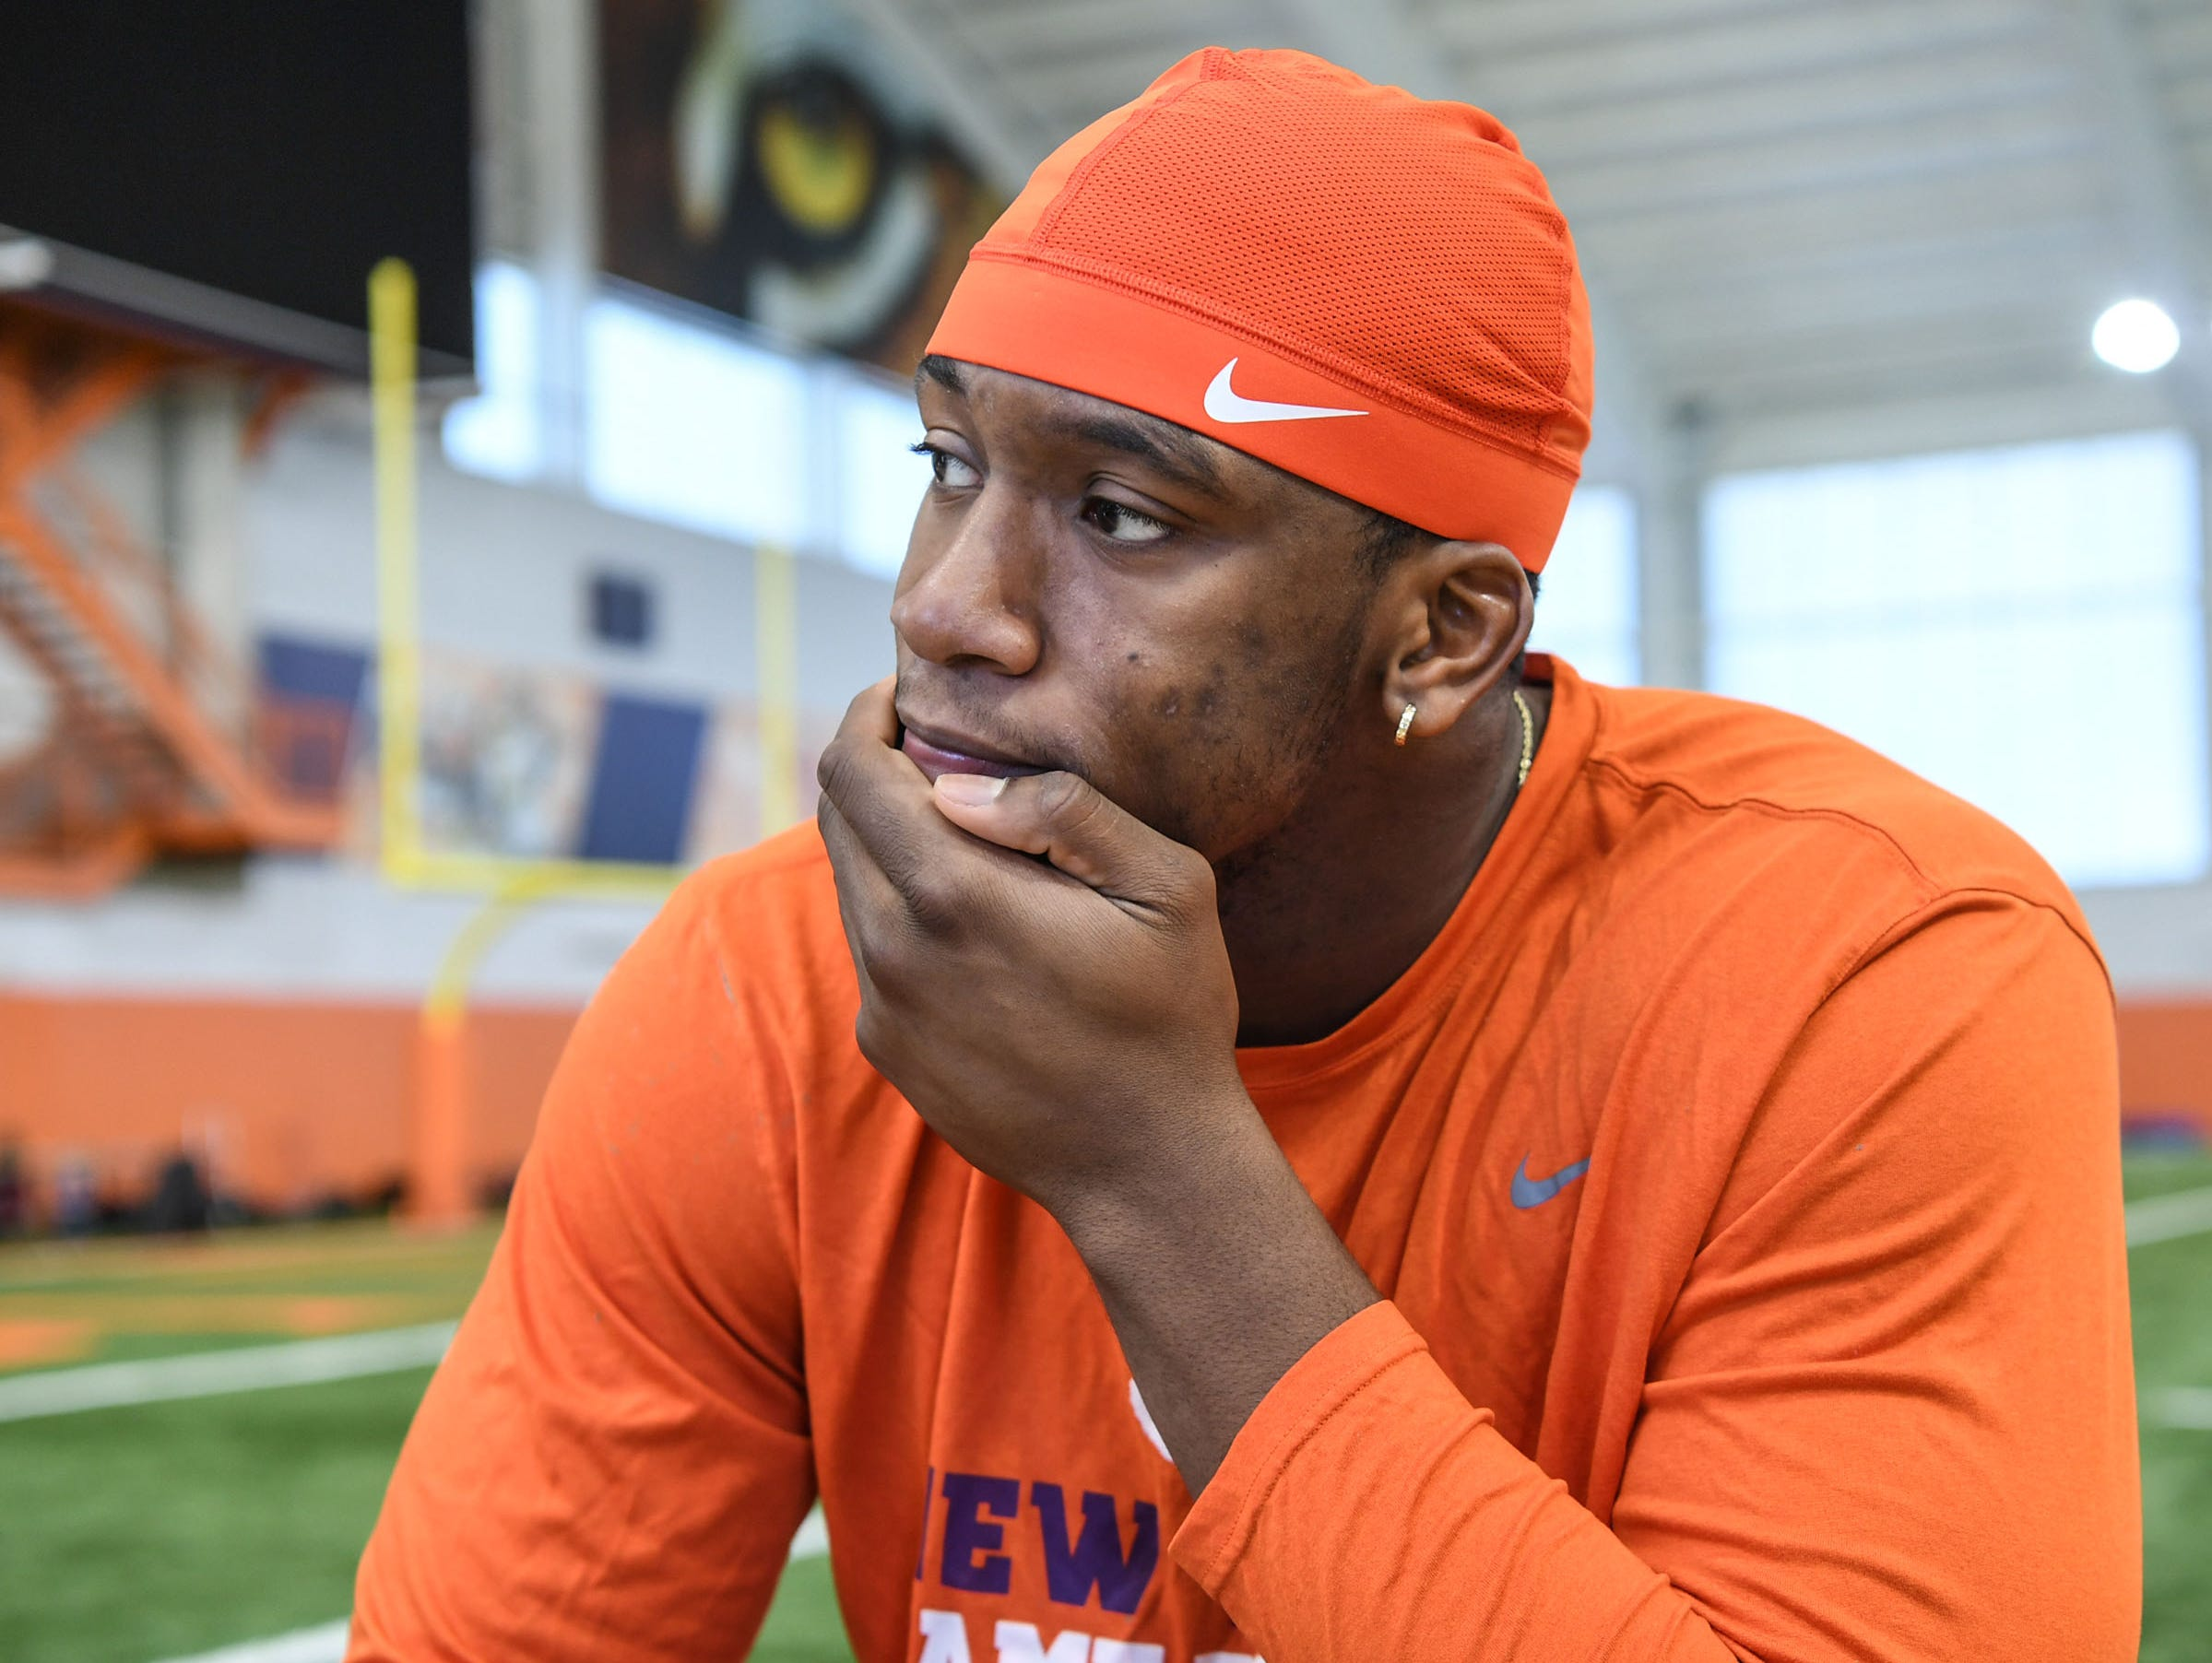 Clemson defensive lineman Clelin Ferrell is interviewed during Media Day at the Poe Indoor Facility in Clemson on Tuesday.